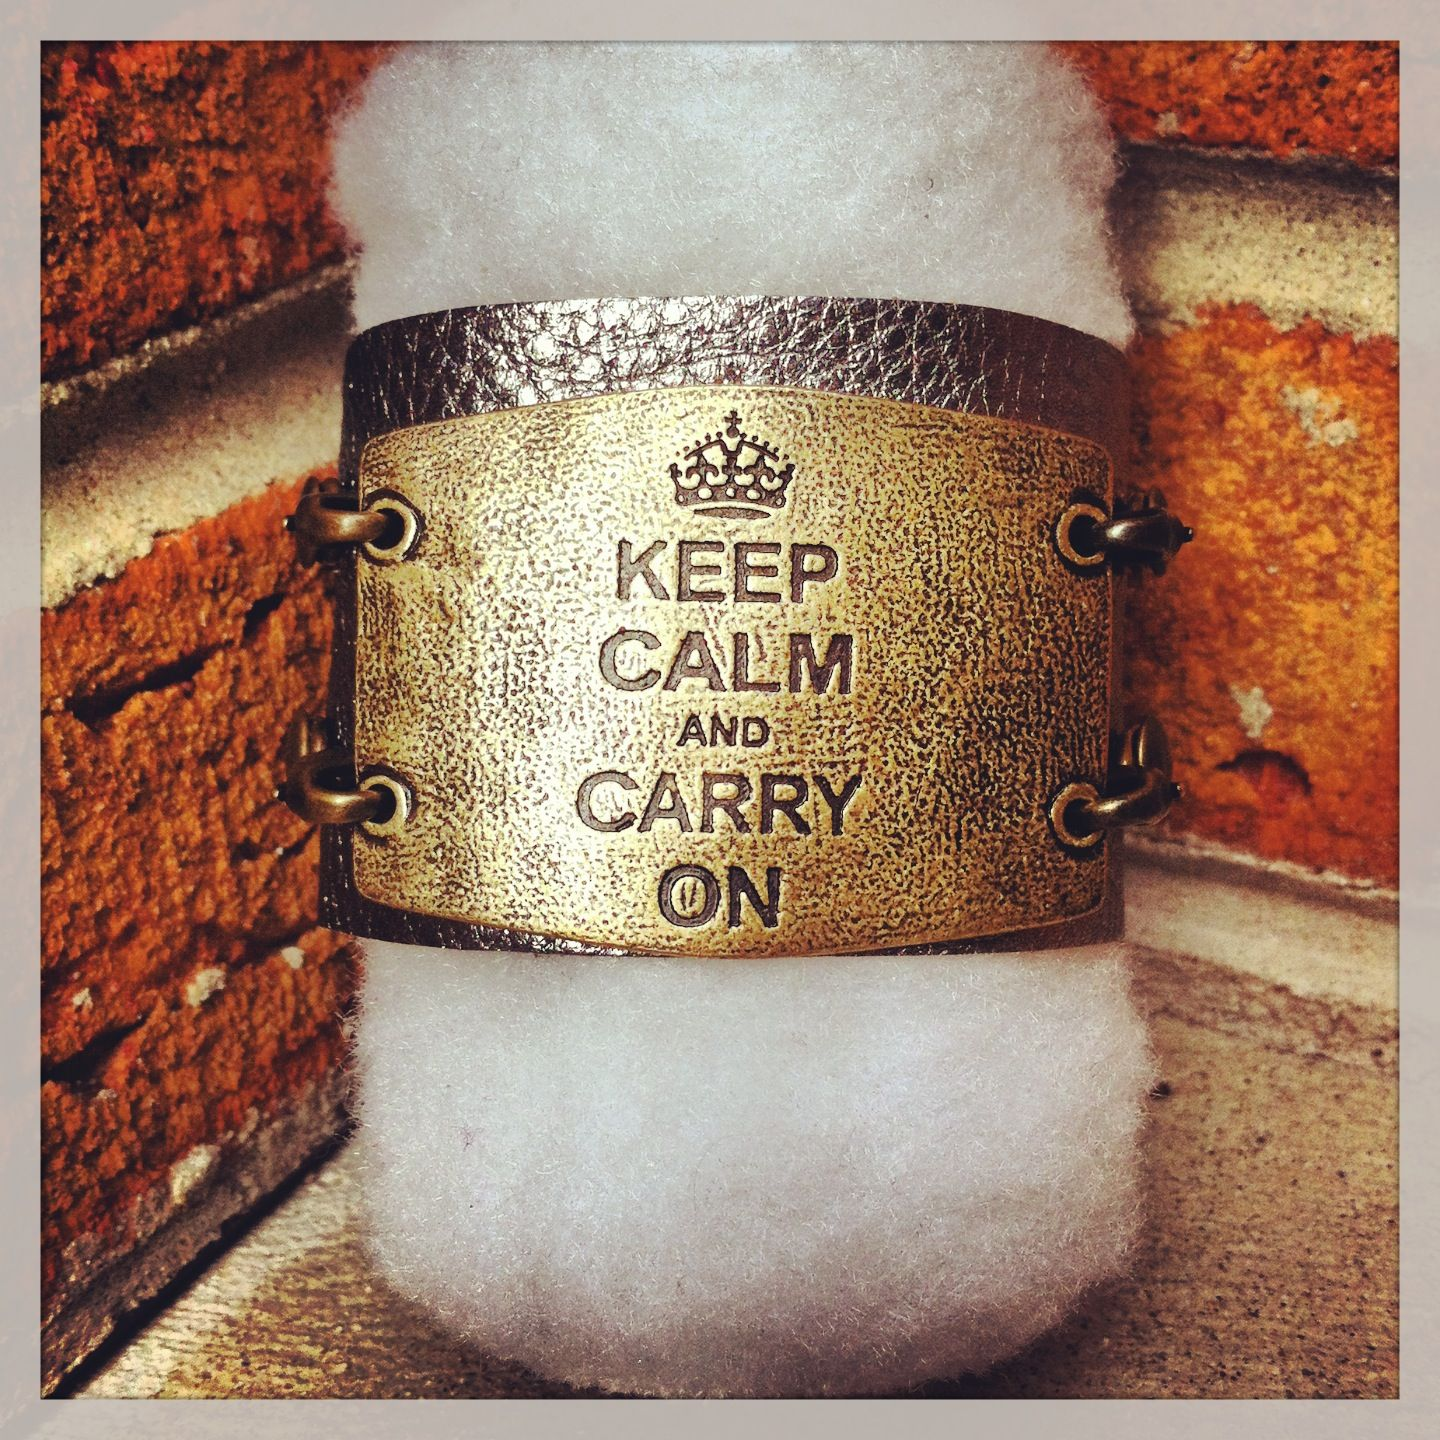 Keep Calm and Carry On leather cuff from Lenny & Eva available at enzee boutique